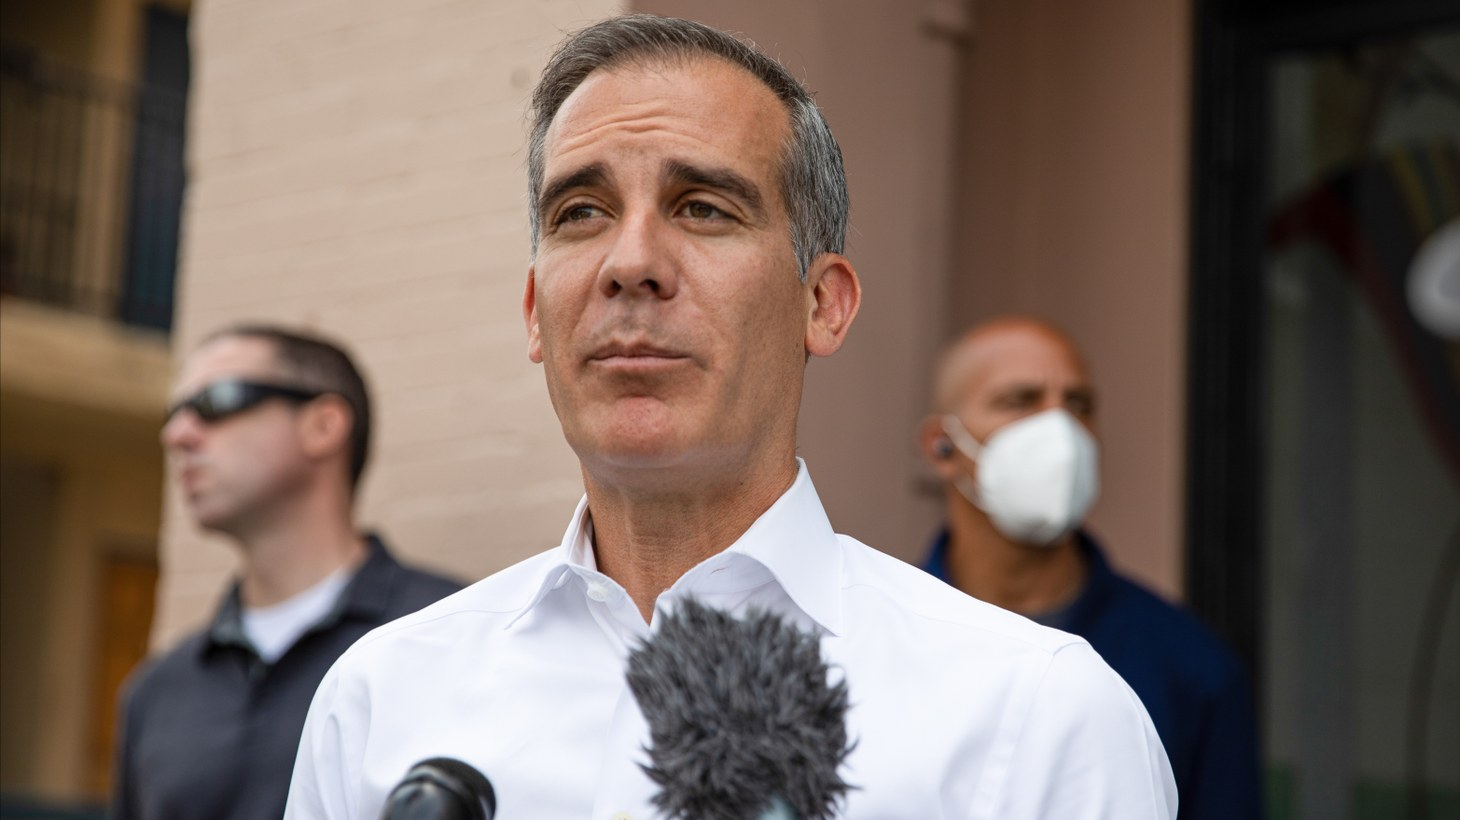 Mayor Garcetti speaks to the press about the homeless crisis along the boardwalk in Venice Beach, California, June 29, 2021. On July 9, Garcetti confirmed that President Biden nominated him as U.S. Ambassador to India.